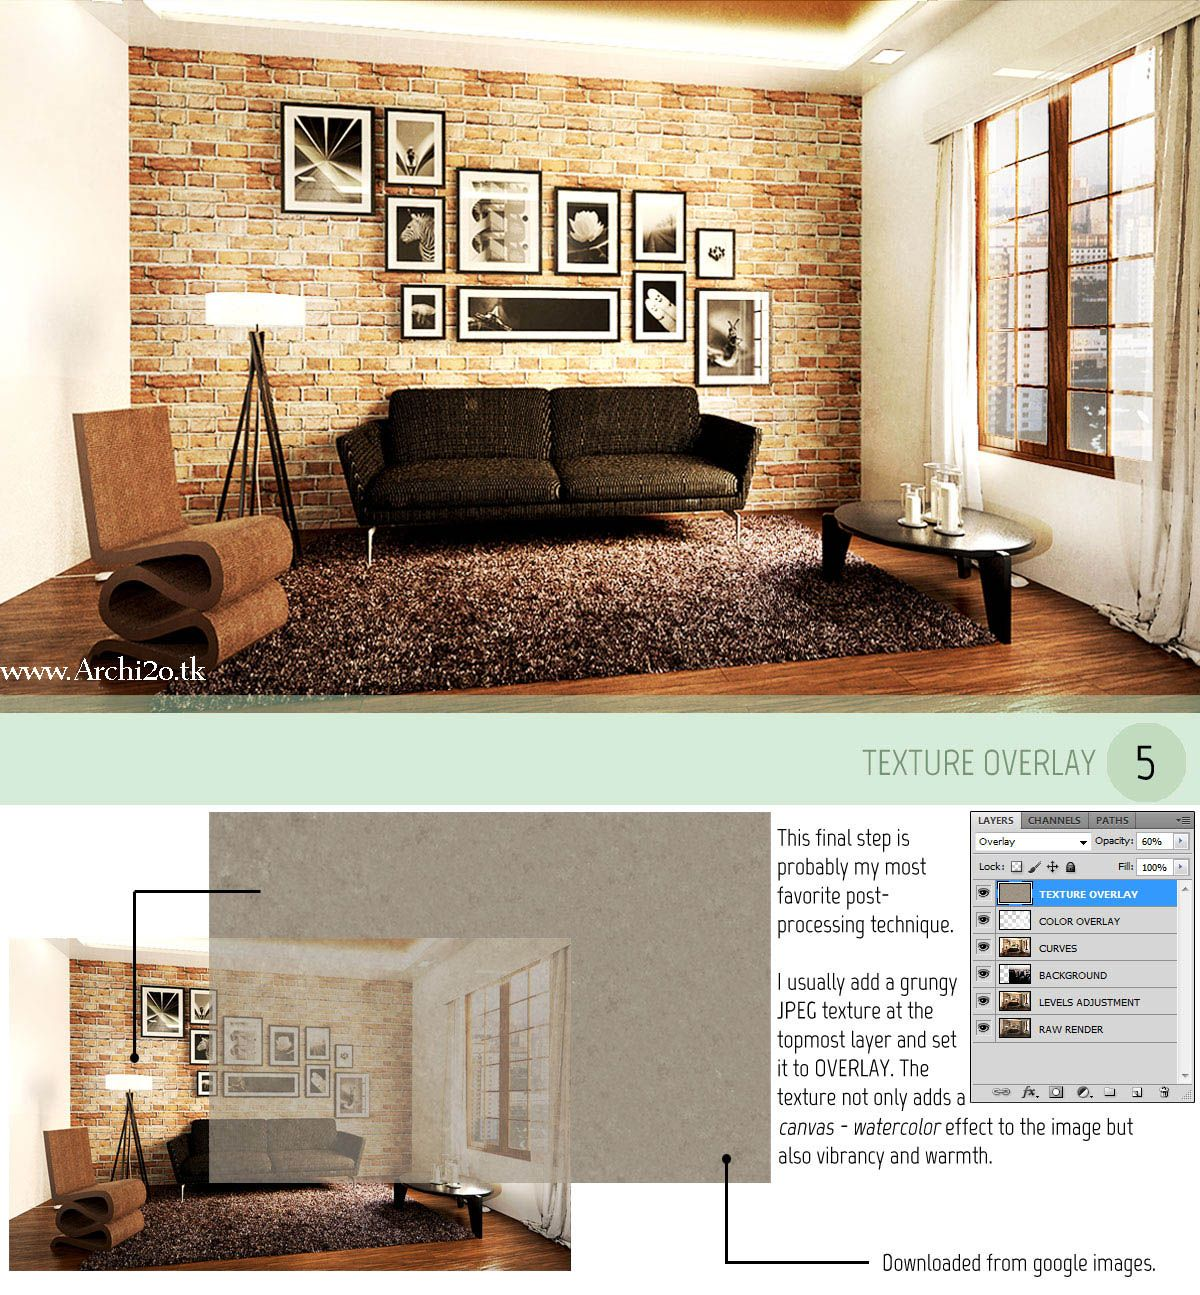 vray for sketchup tutorial part 3 post processing full article at. Black Bedroom Furniture Sets. Home Design Ideas